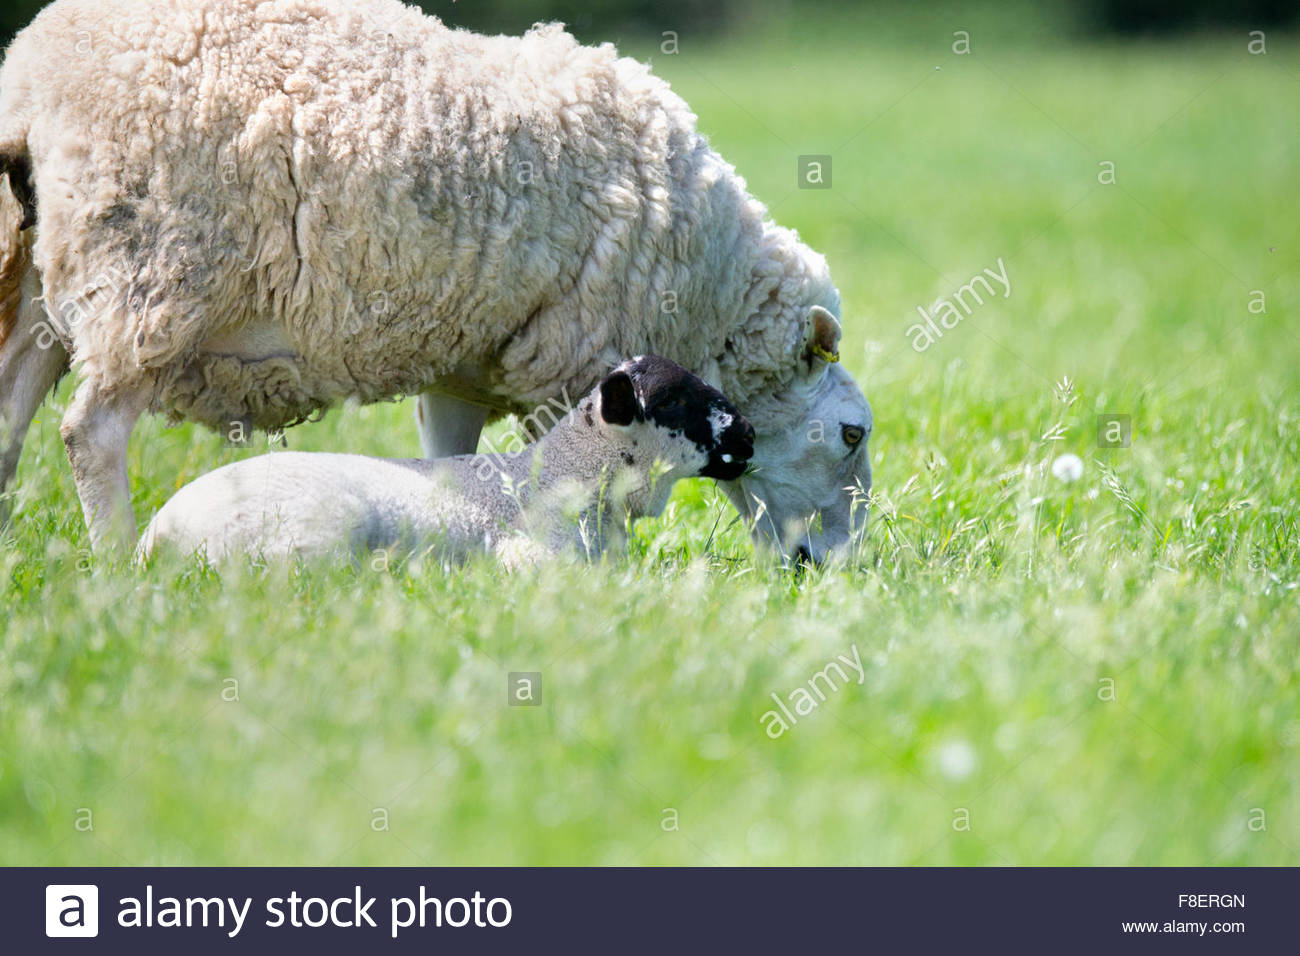 Sheep and lamb in sunny green spring field - Stock Image